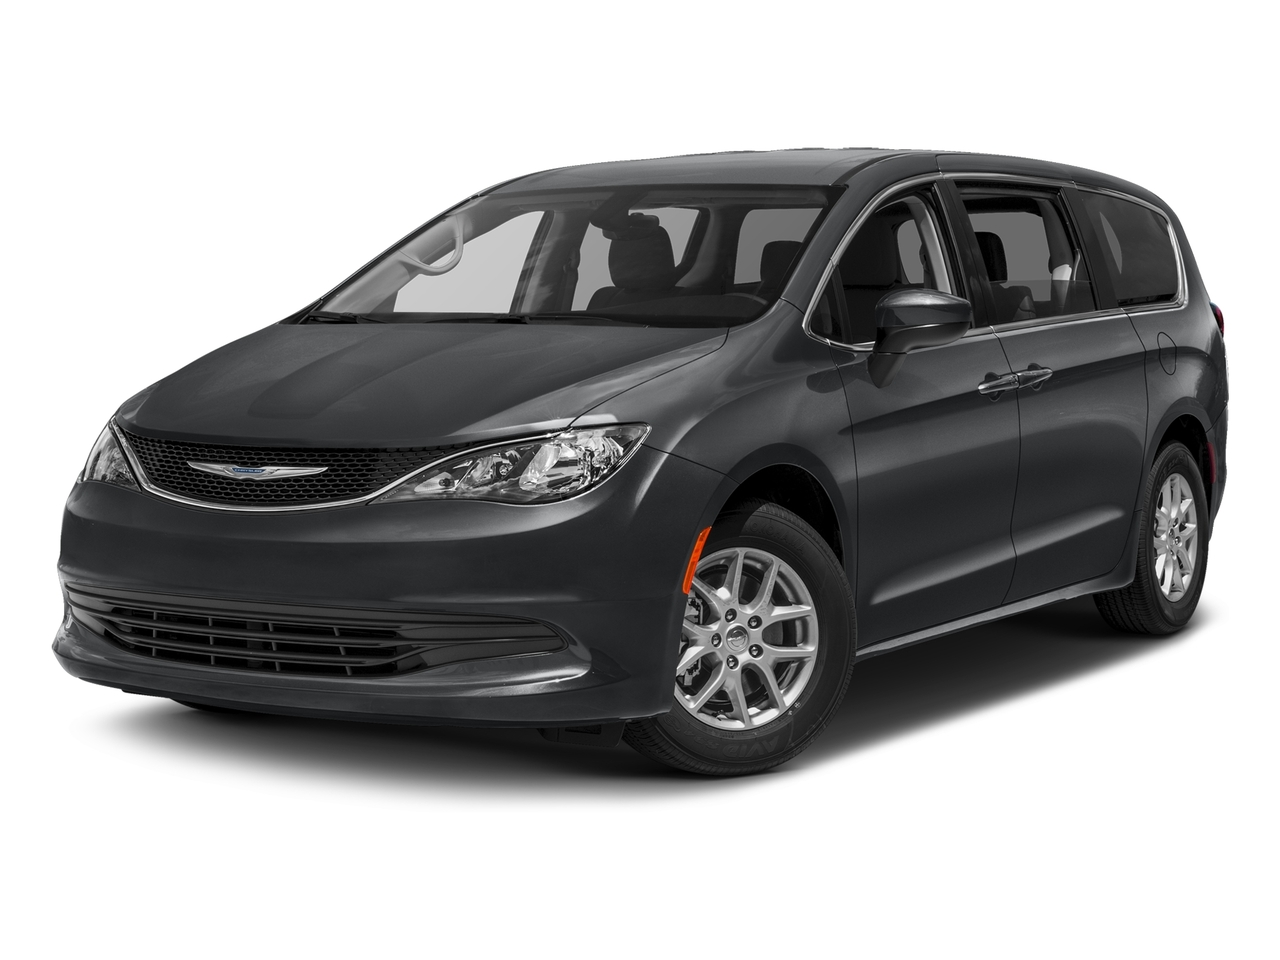 2017 Chrysler Town & Country